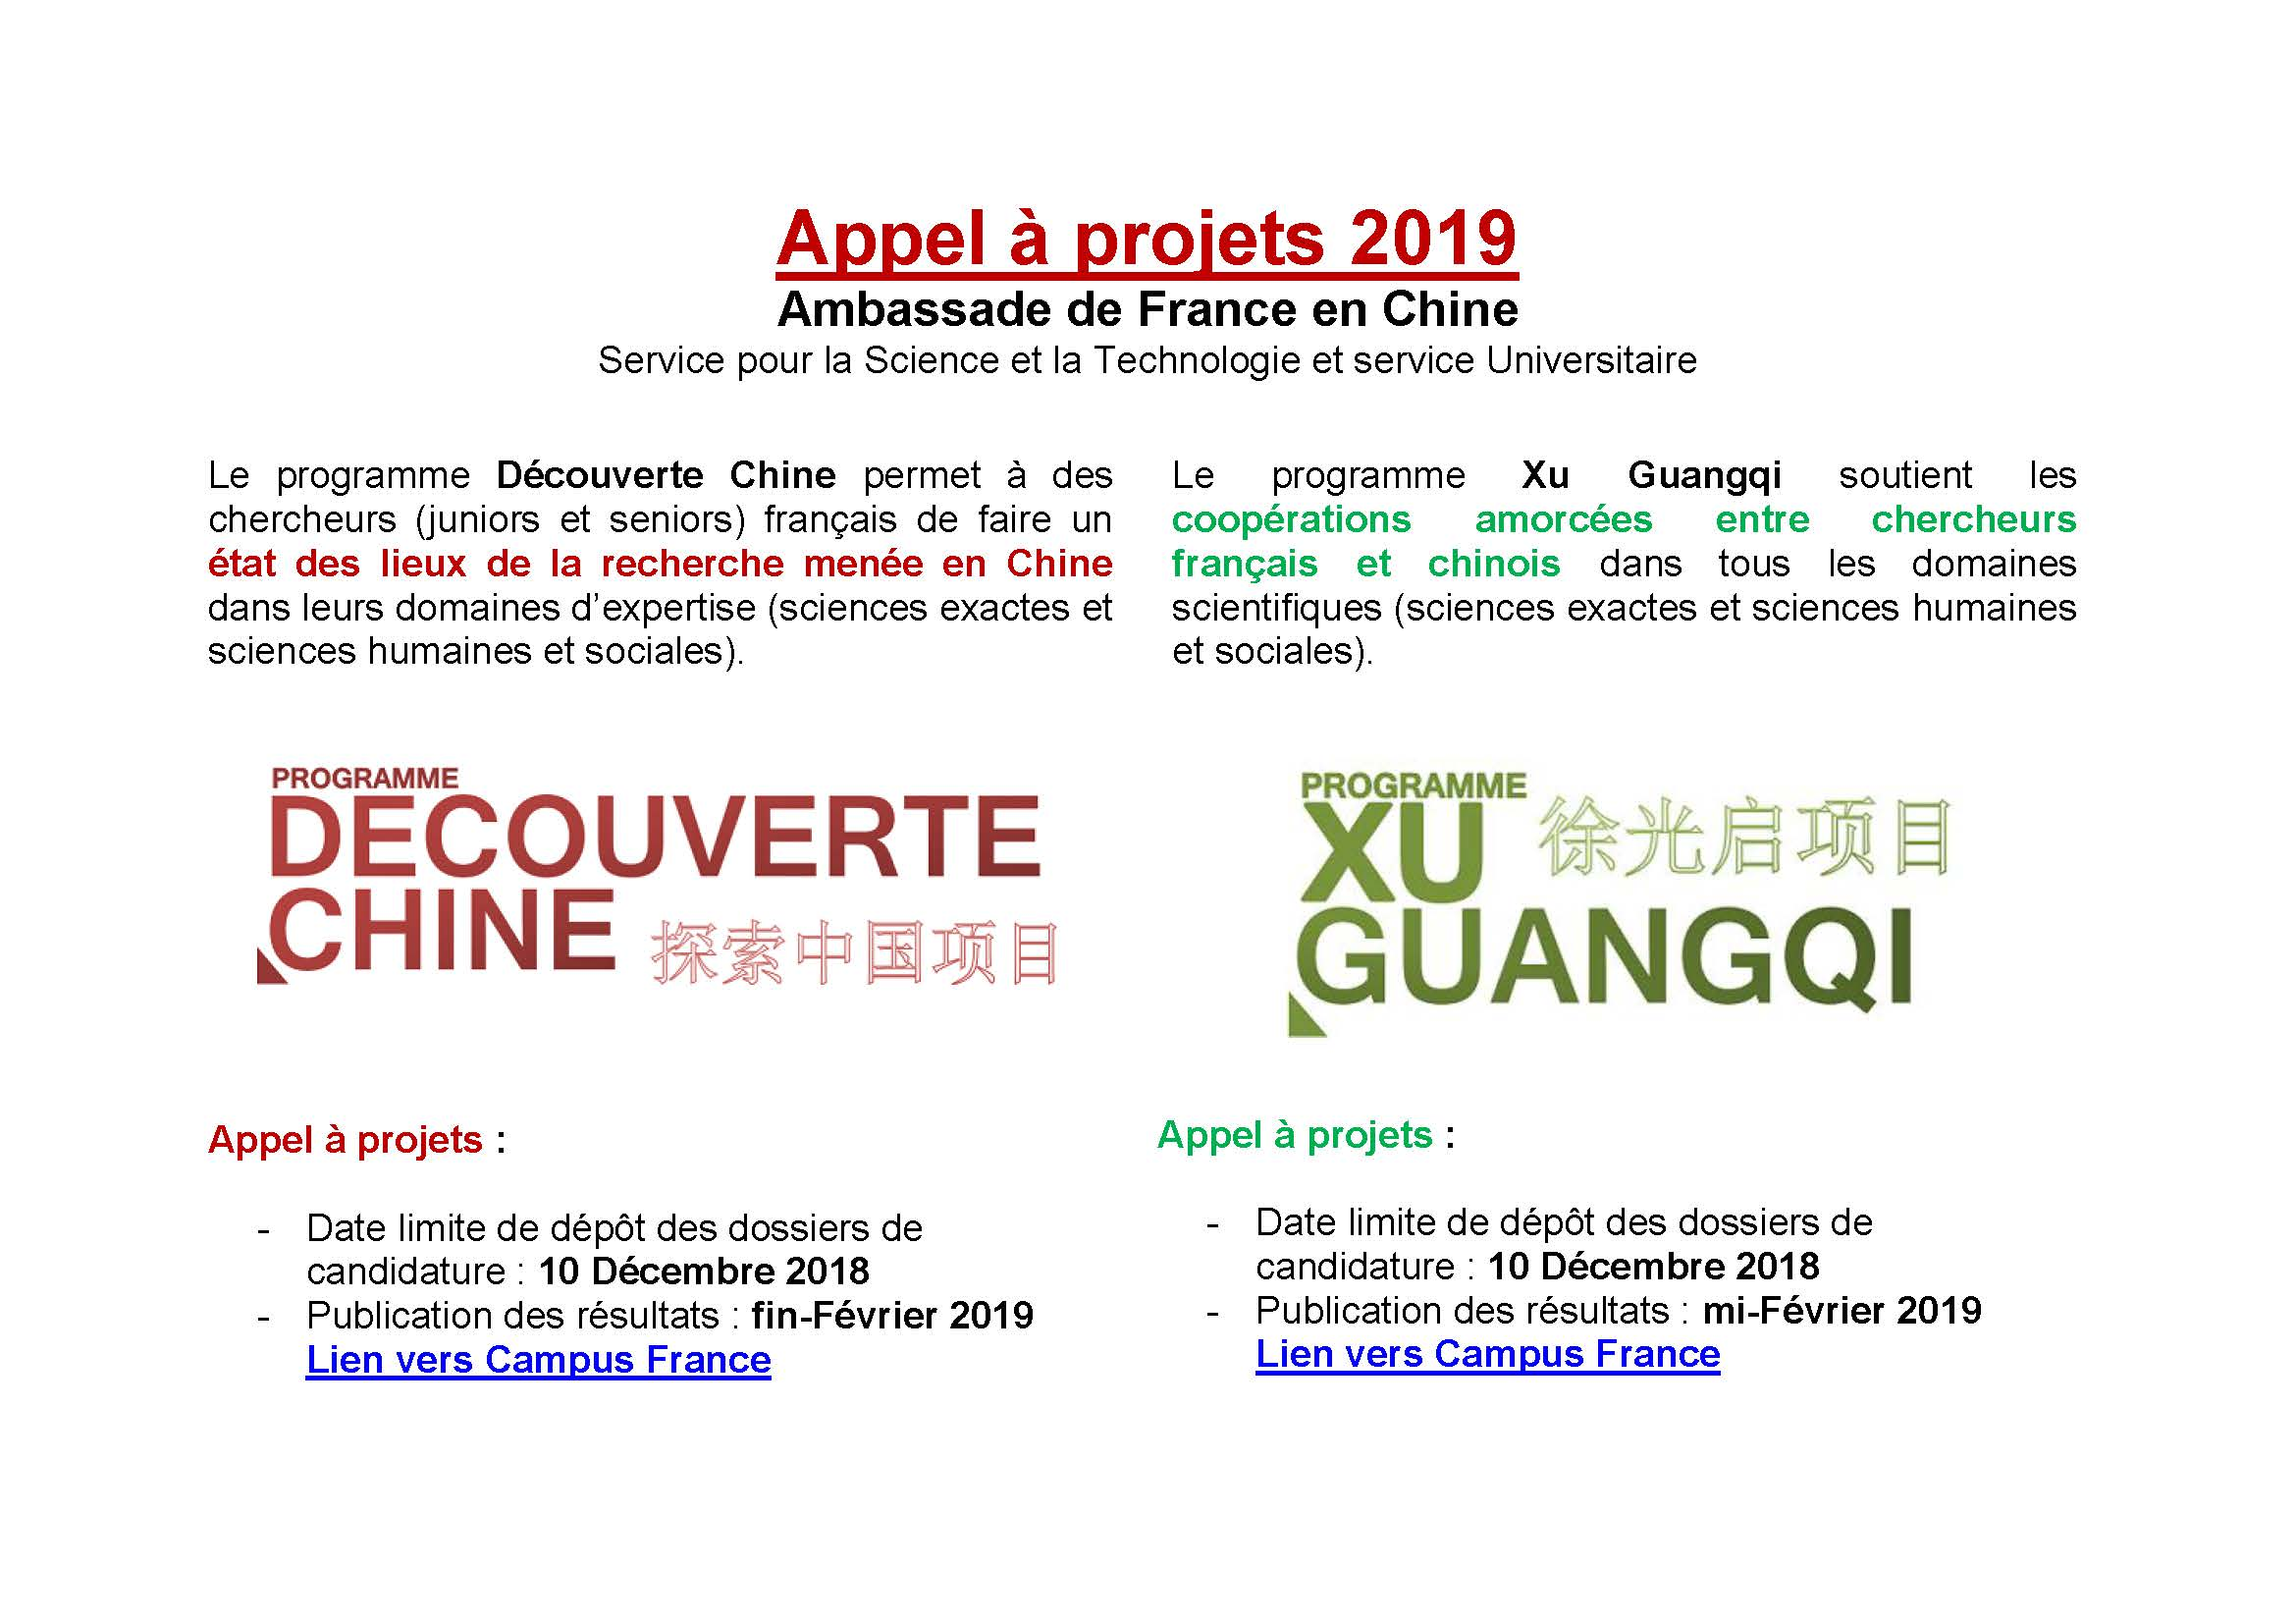 decouverte chine